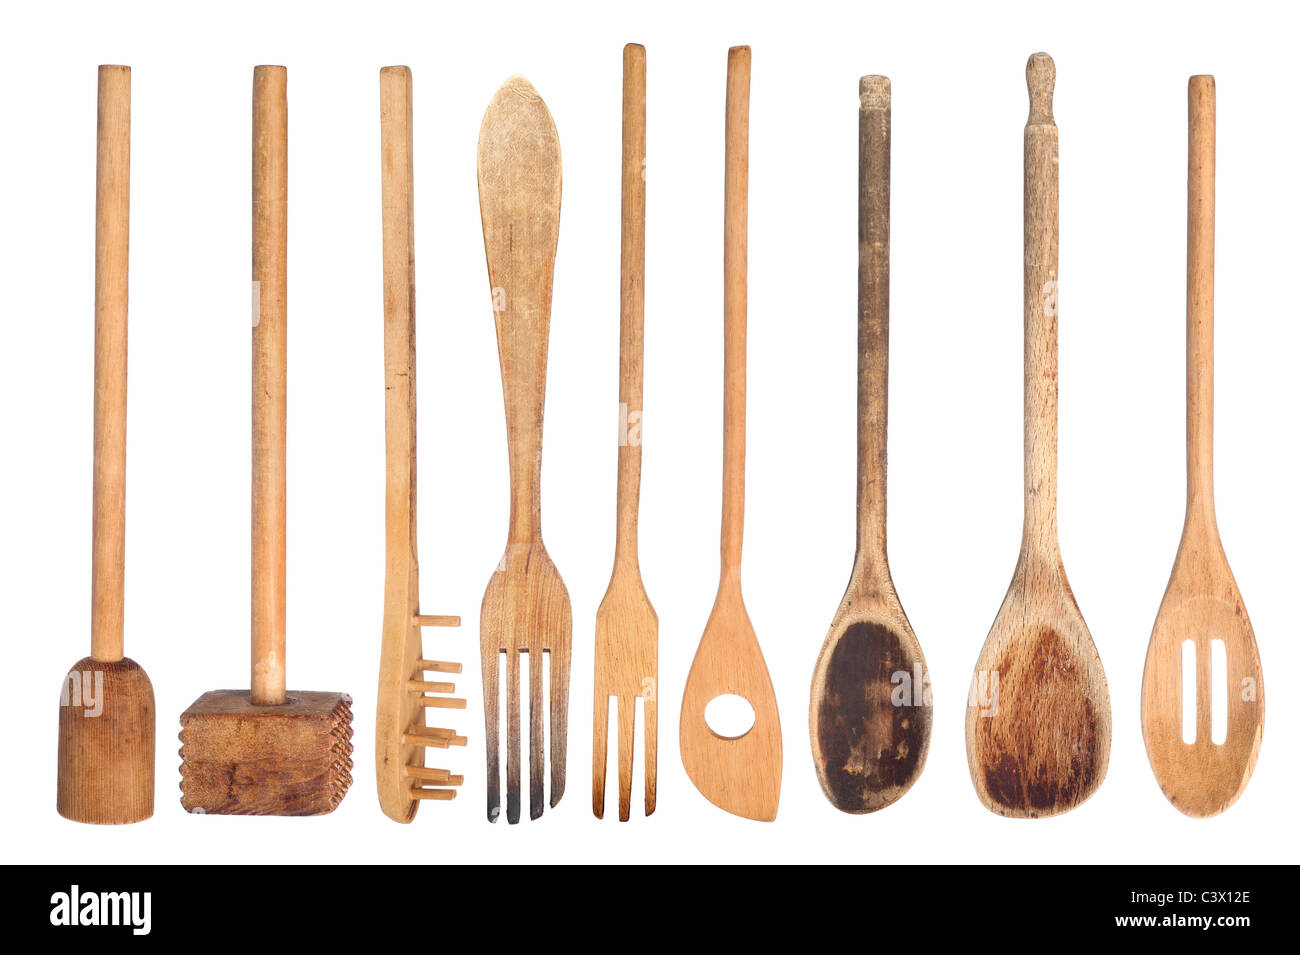 A collection of wooden kitchen utensils isolated on white Stock Photo